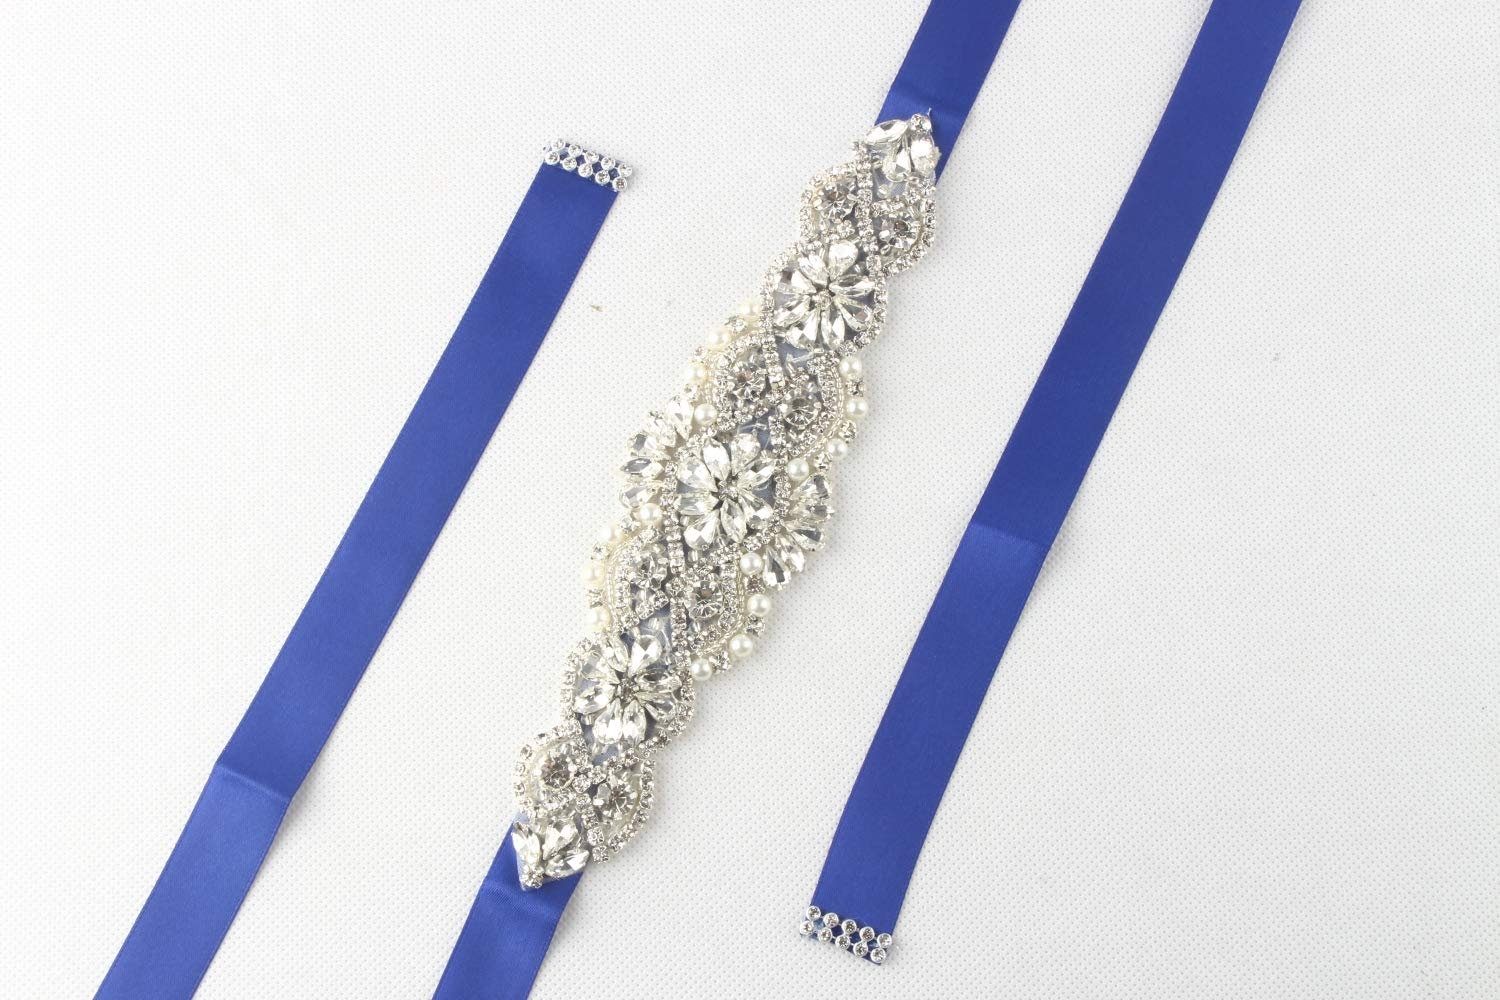 WILTEEXS Handmade Bridal Belt Wedding Belts Sashes Rhinestone Crystal Beads Belt For Bridal Gowns (Silve-blue)